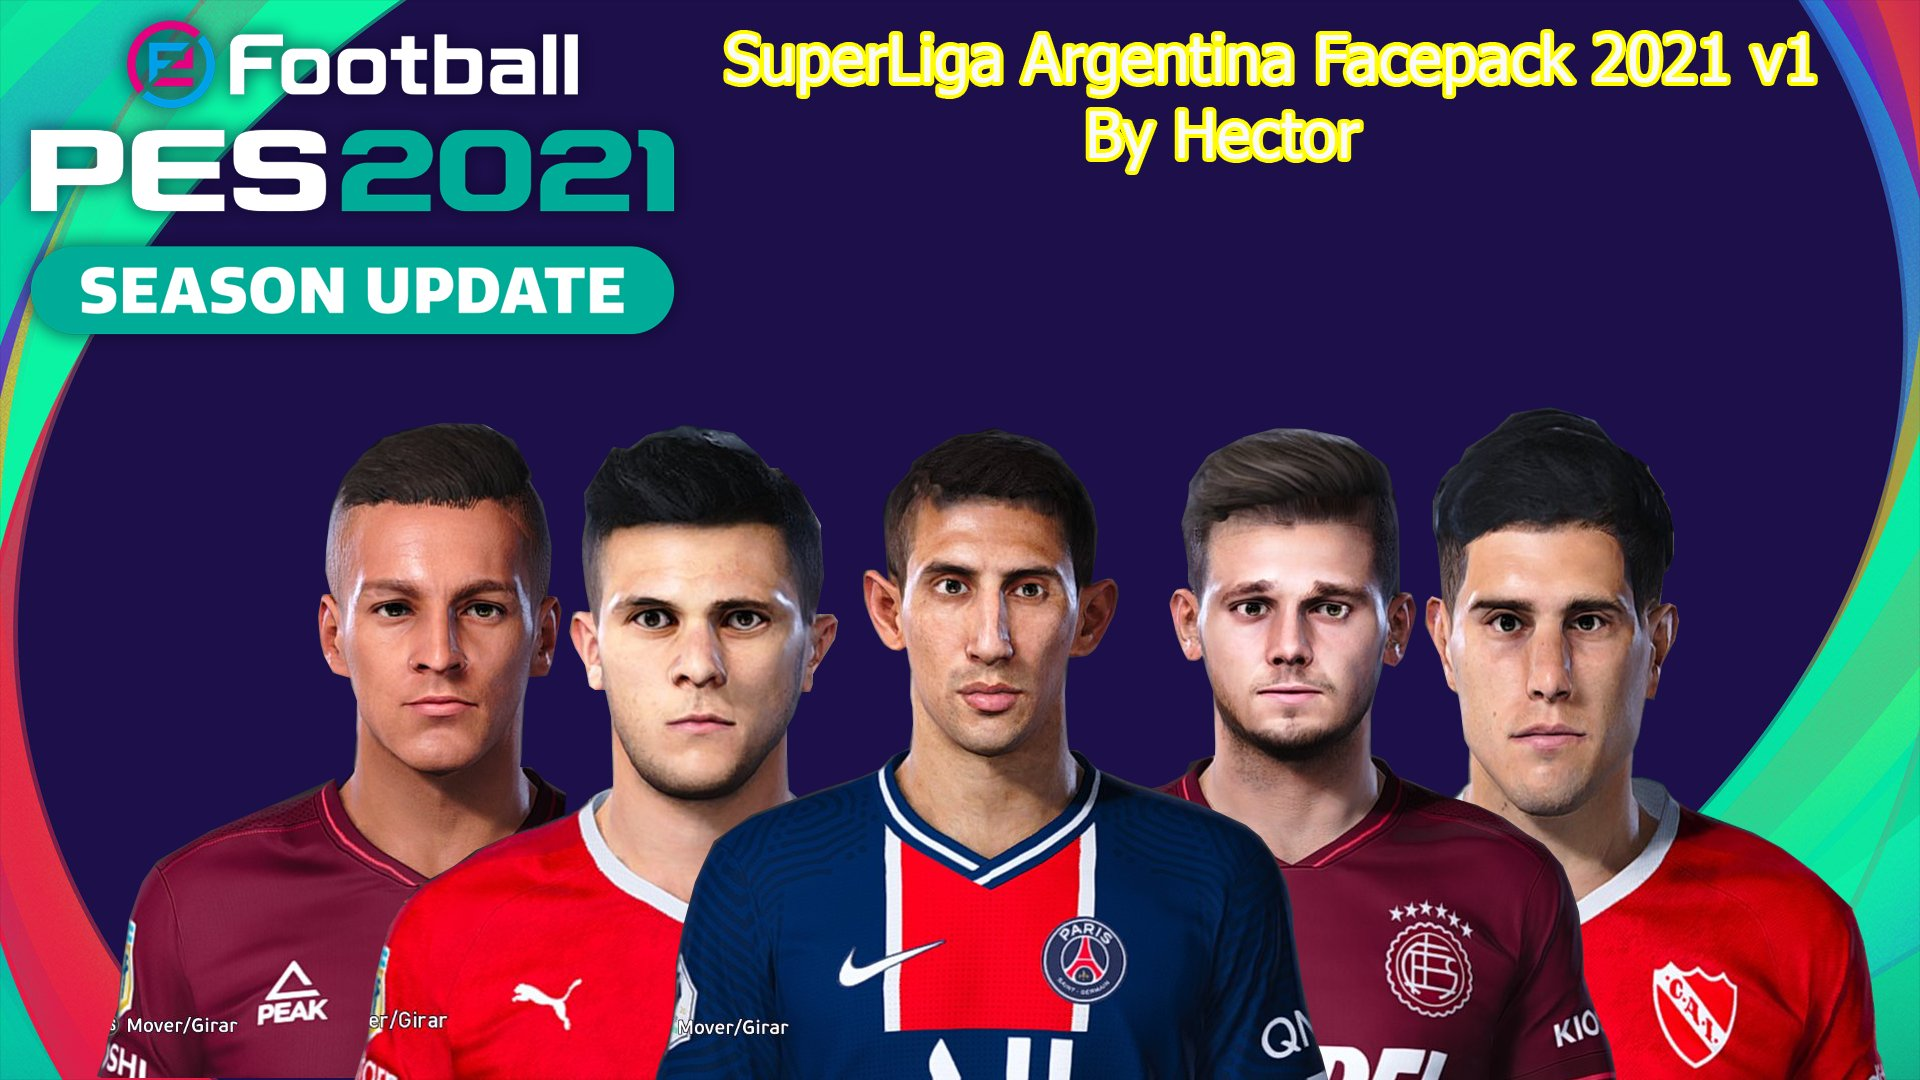 Facepack Argentina by Hector